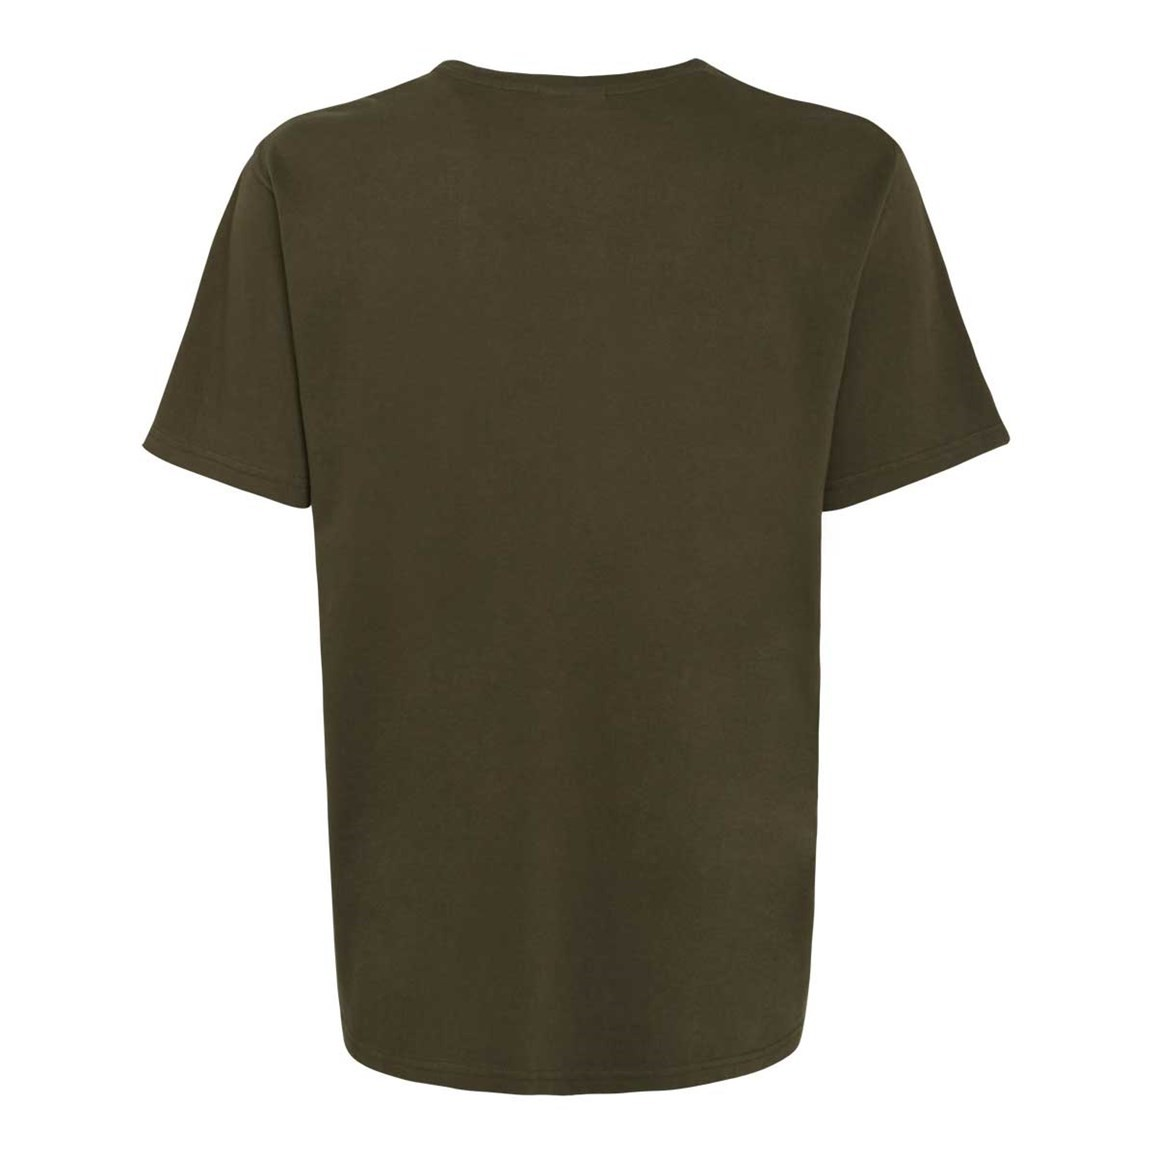 bones embroidered logo classic plain tshirt olive night